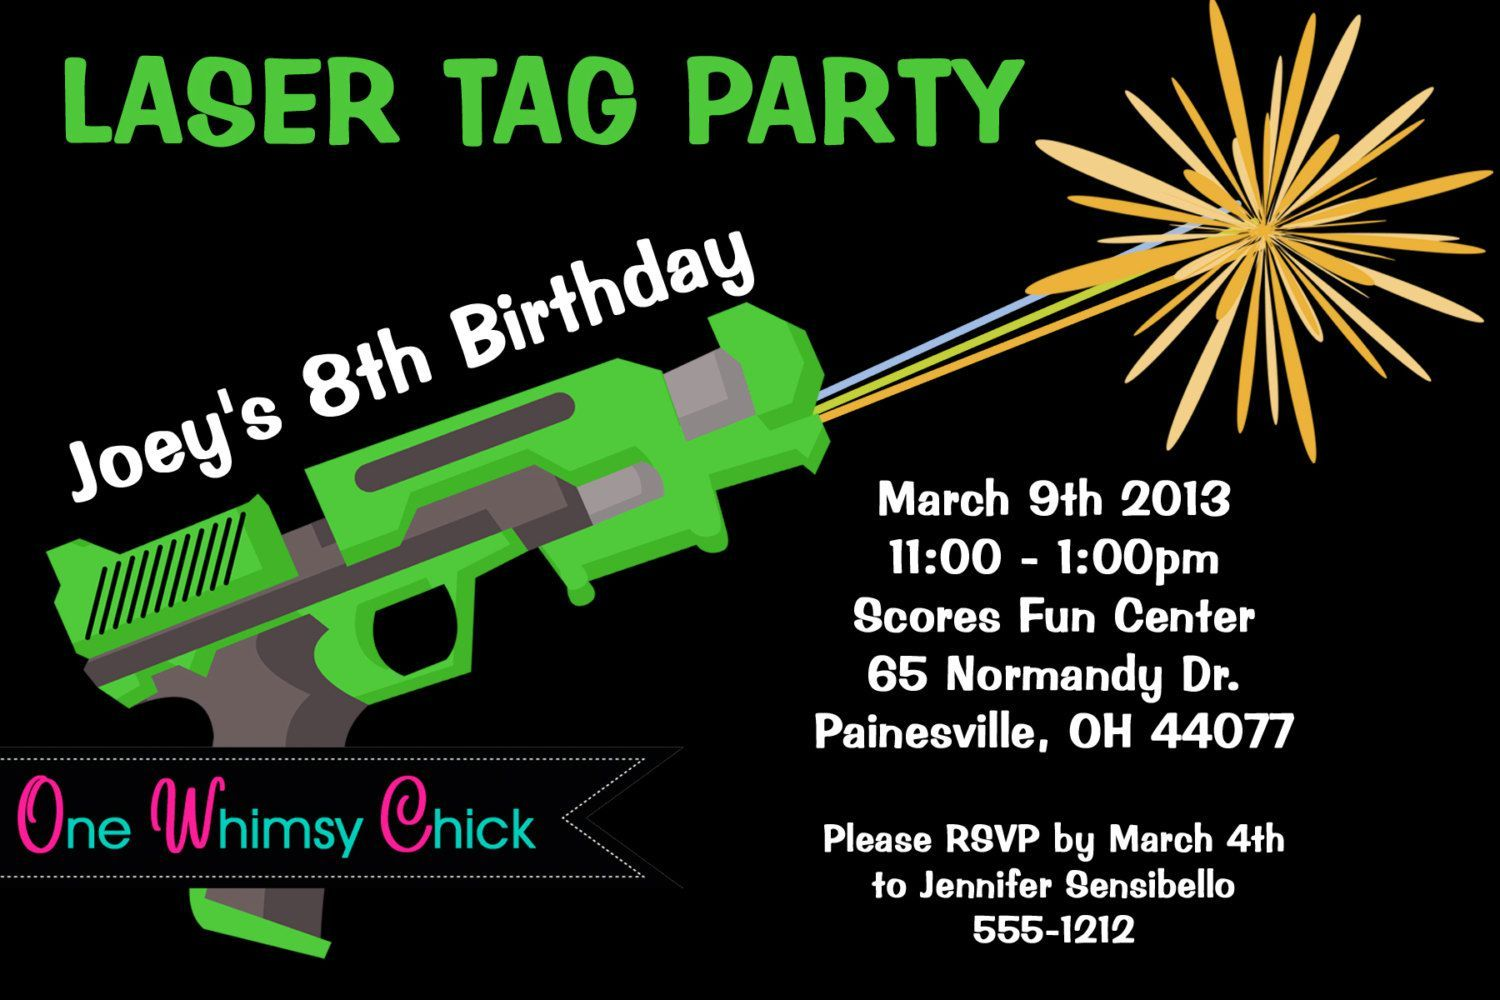 Tags Free Printable Invitations Invitation Ideas Printables Laser Tag Birthday